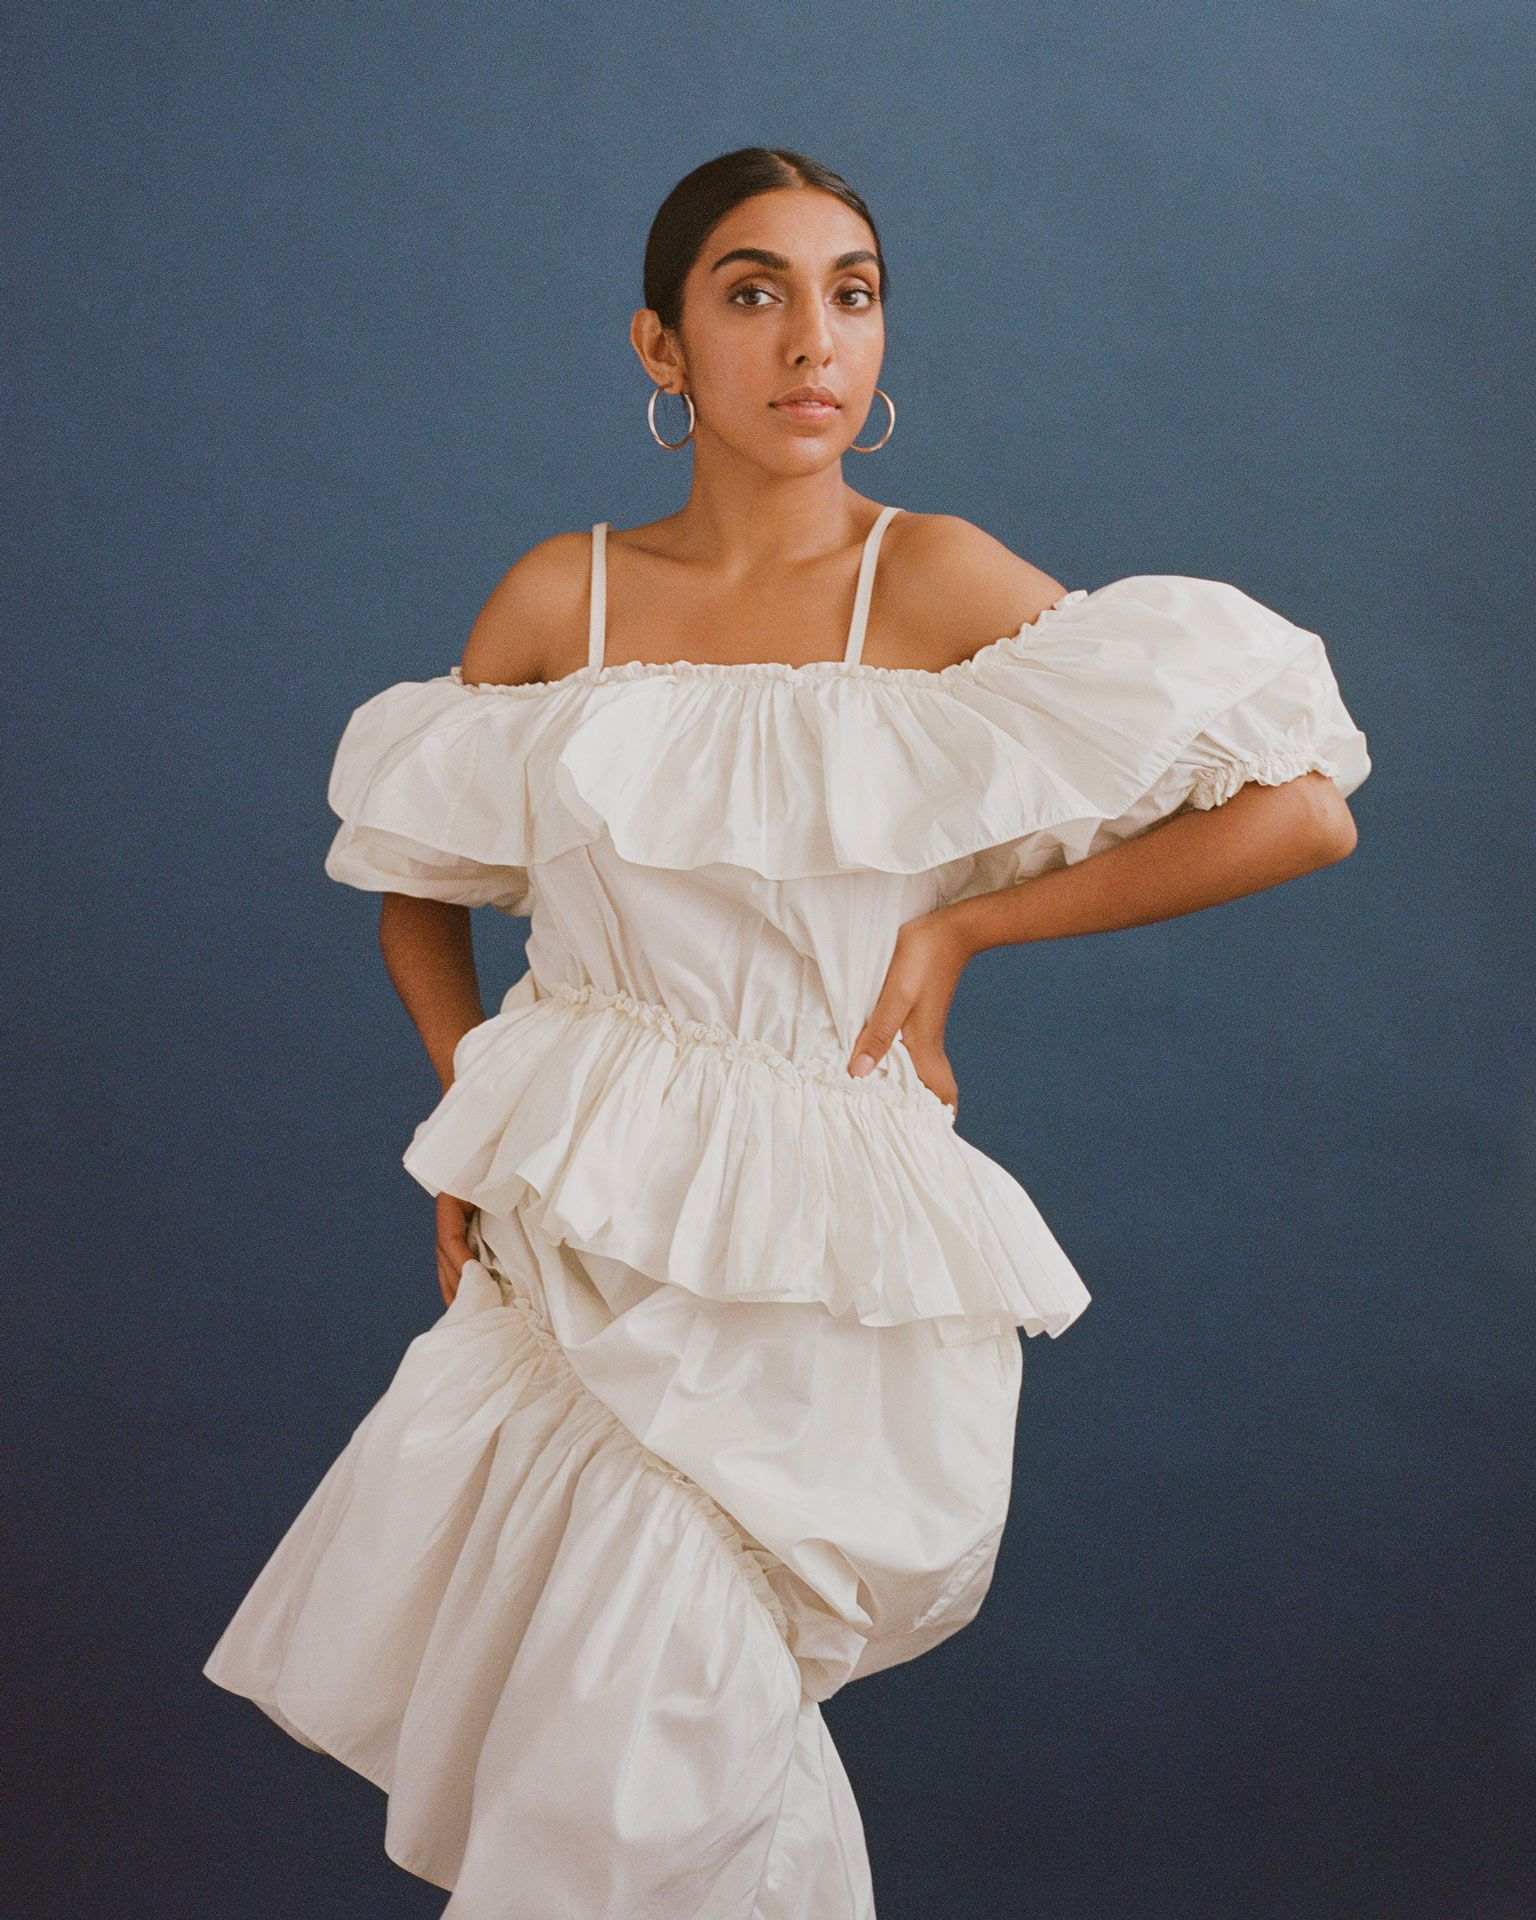 writer Rupi Kaur on blue background looking at camera wearing white dress by Oumayma B Tanfous for Vogue Espana